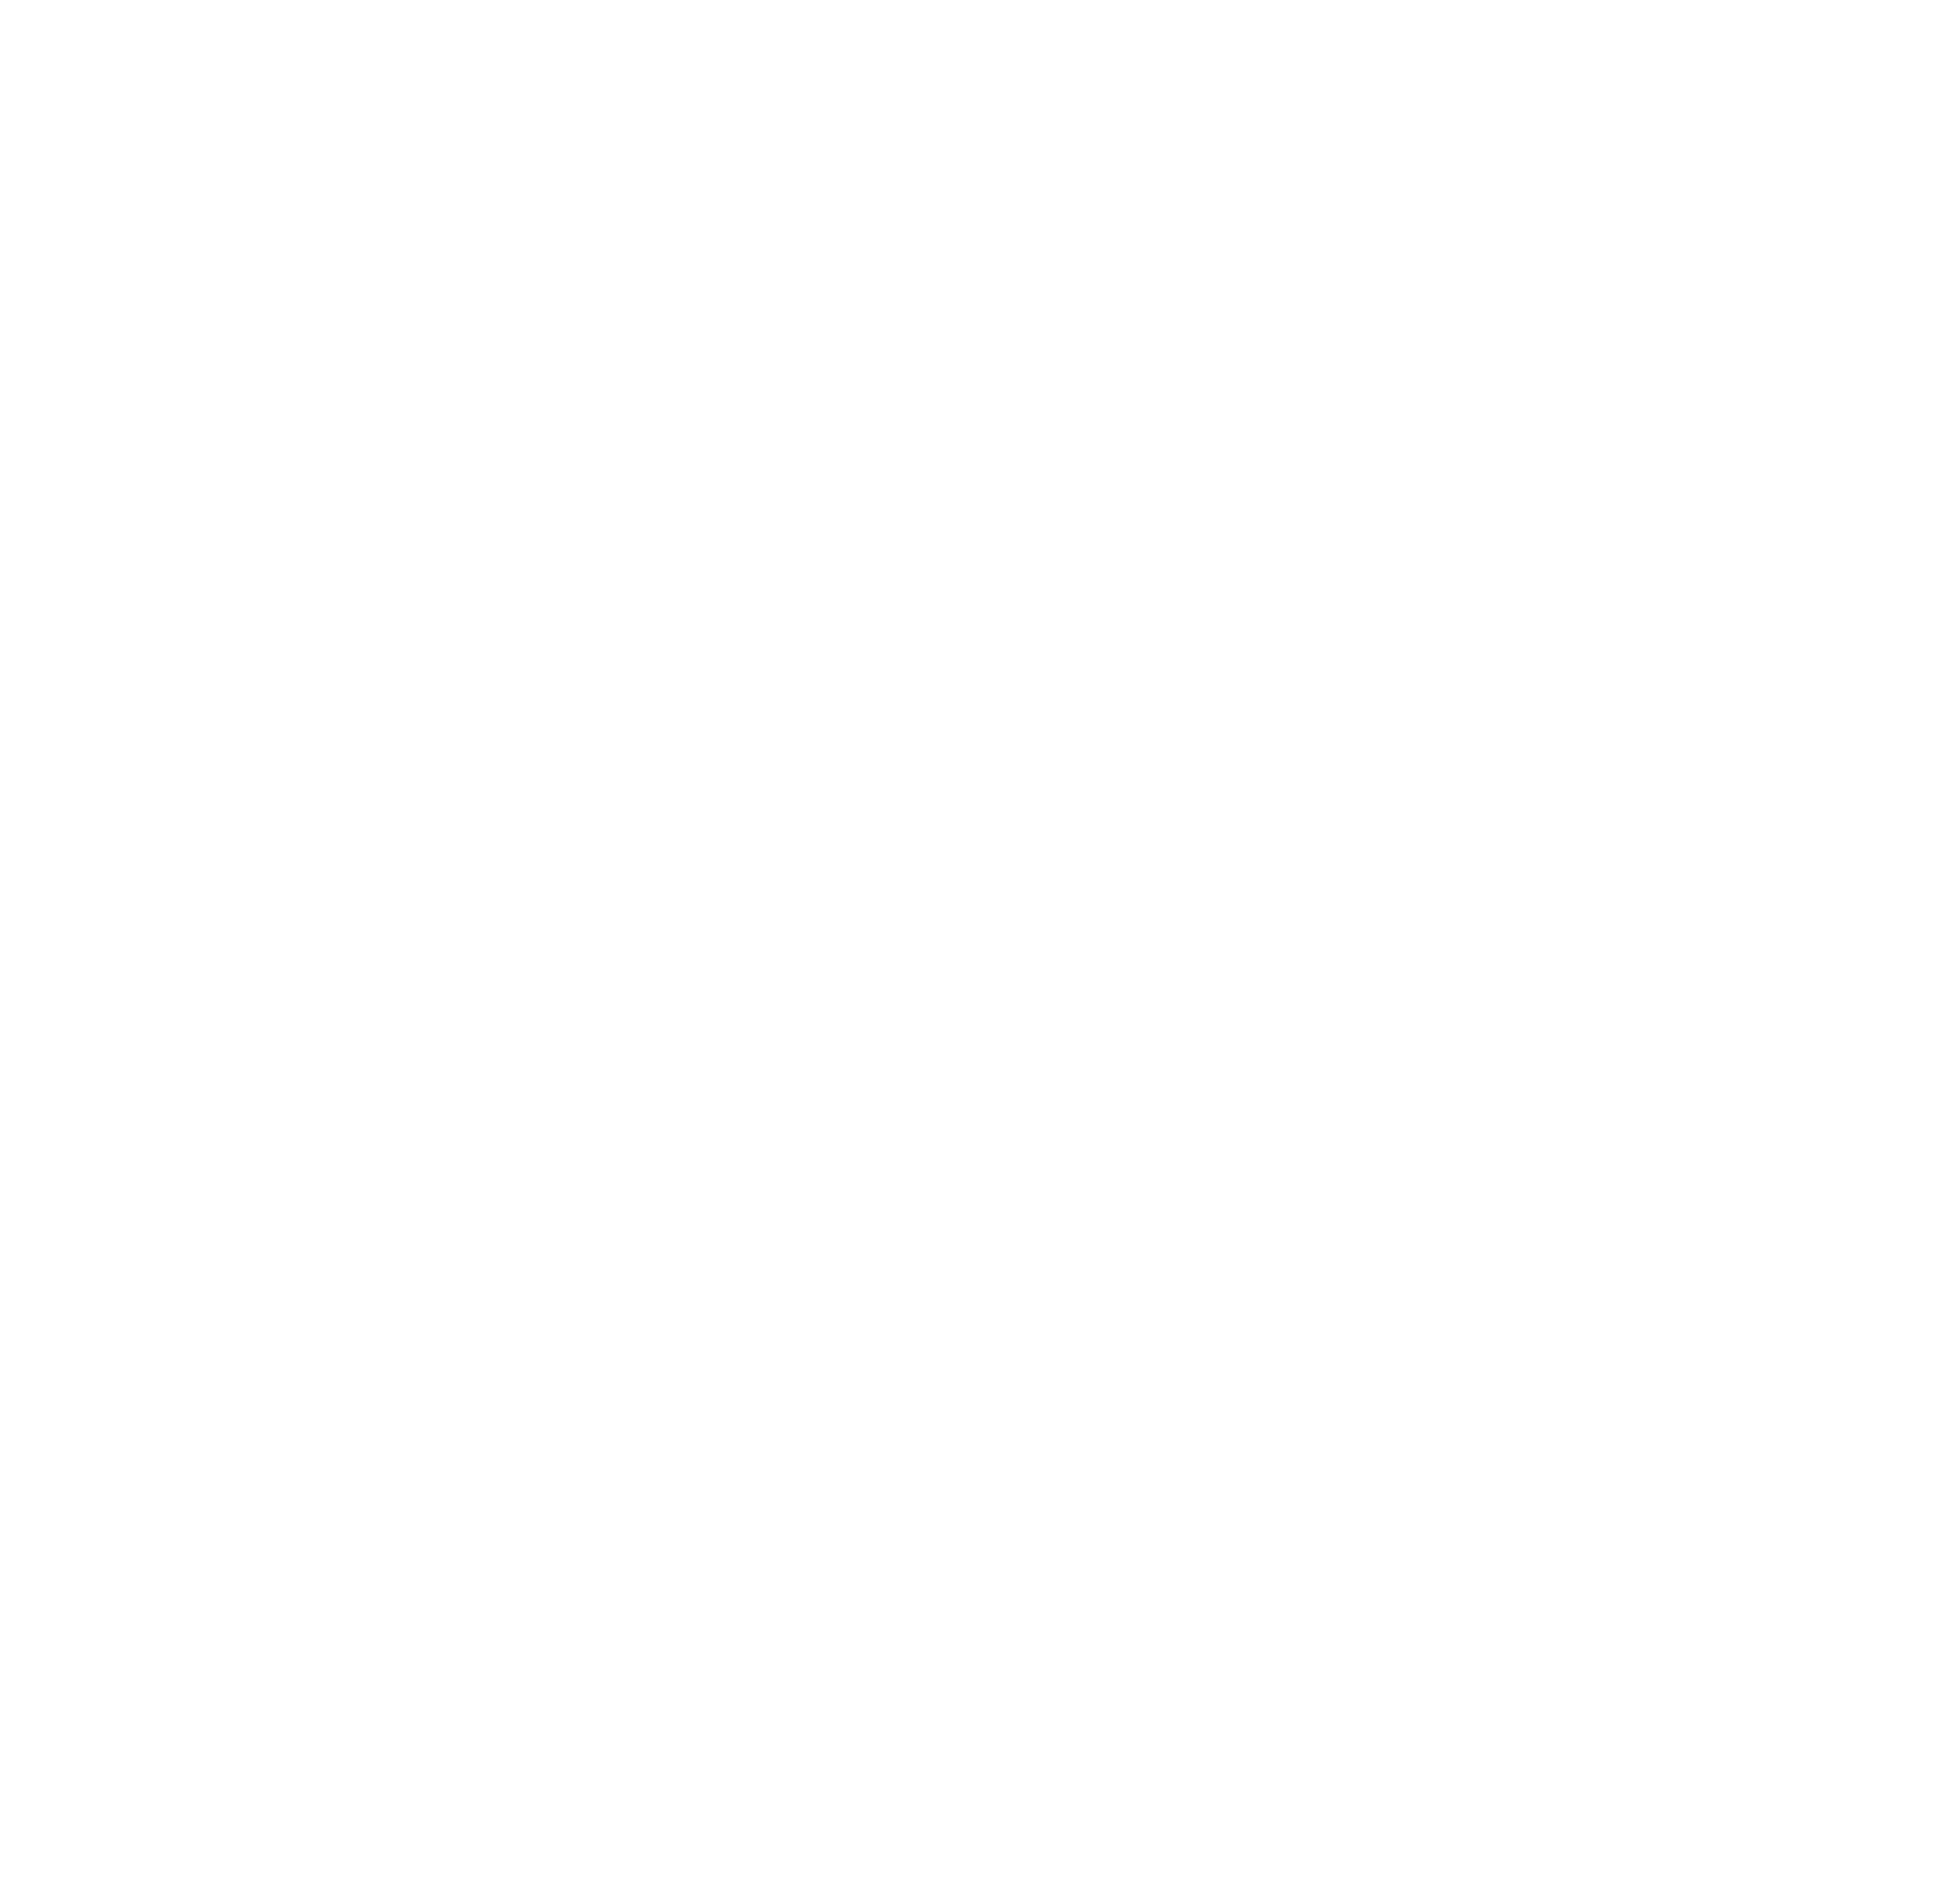 Icon representing hands raised to volunteer